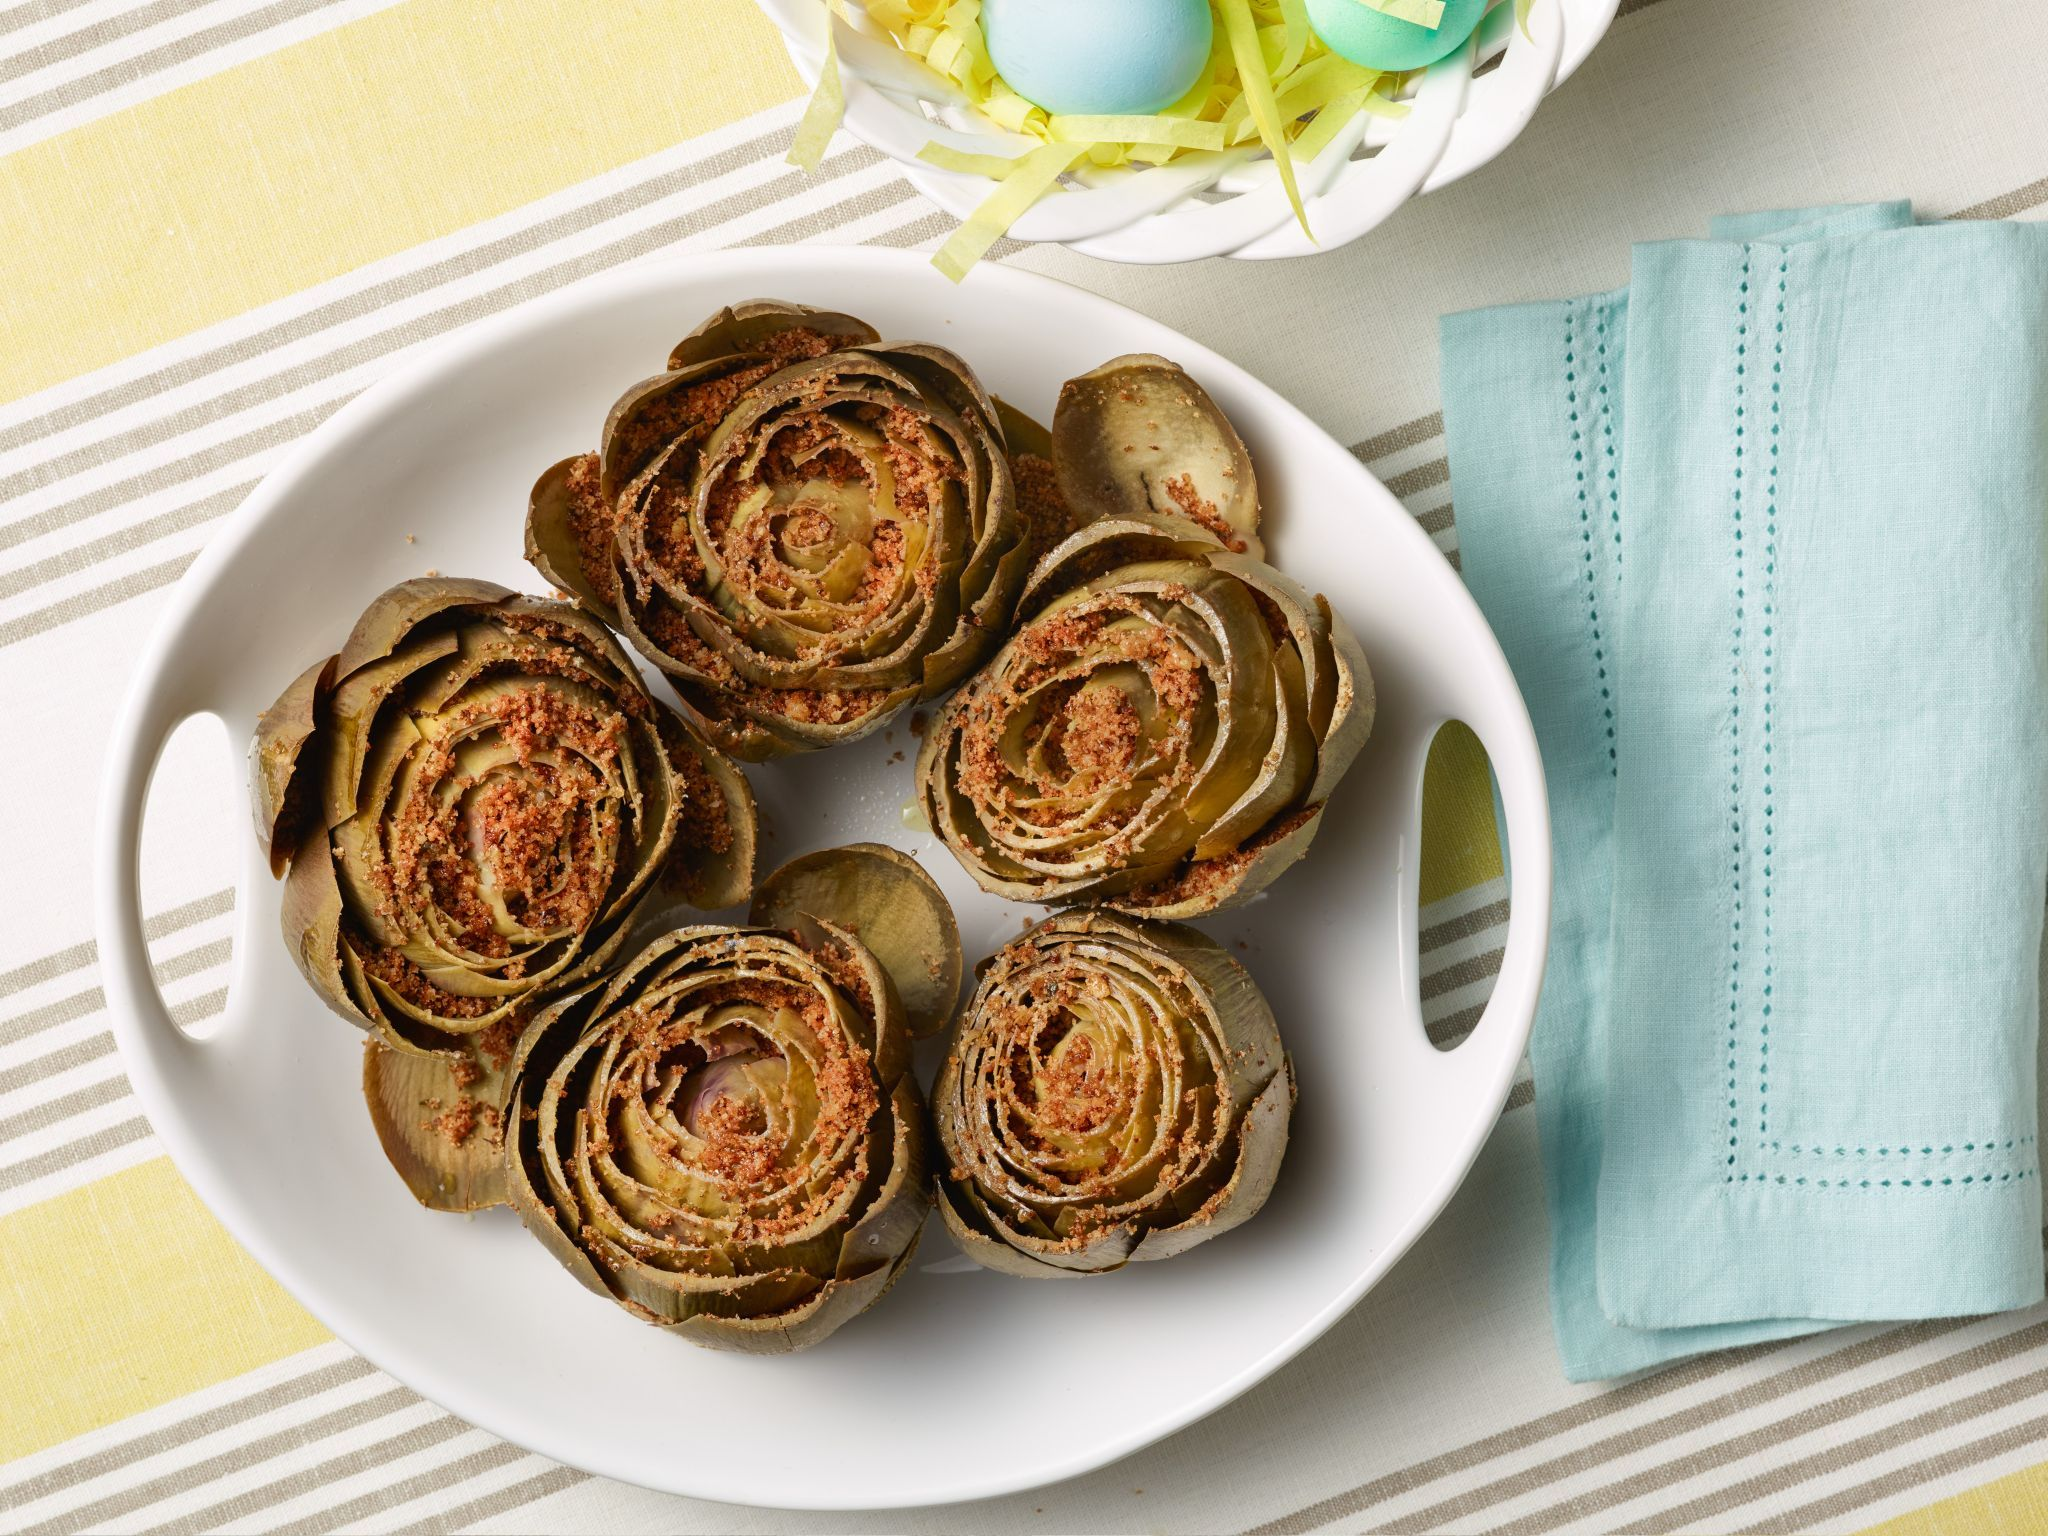 Slow-Cooker Braised Artichokes with Toasted Garlic Breadcrumbs : Add these easy-to-make stuffed artichokes to your Easter dinner menu and watch how quickly they disappear. Your guests will love peeling off the tender leaves, and they'll be happily surprised to find little pockets of garlicky breadcrumbs inside. For a spicy kick, add a pinch of crushed red chile flakes to the breadcrumbs.